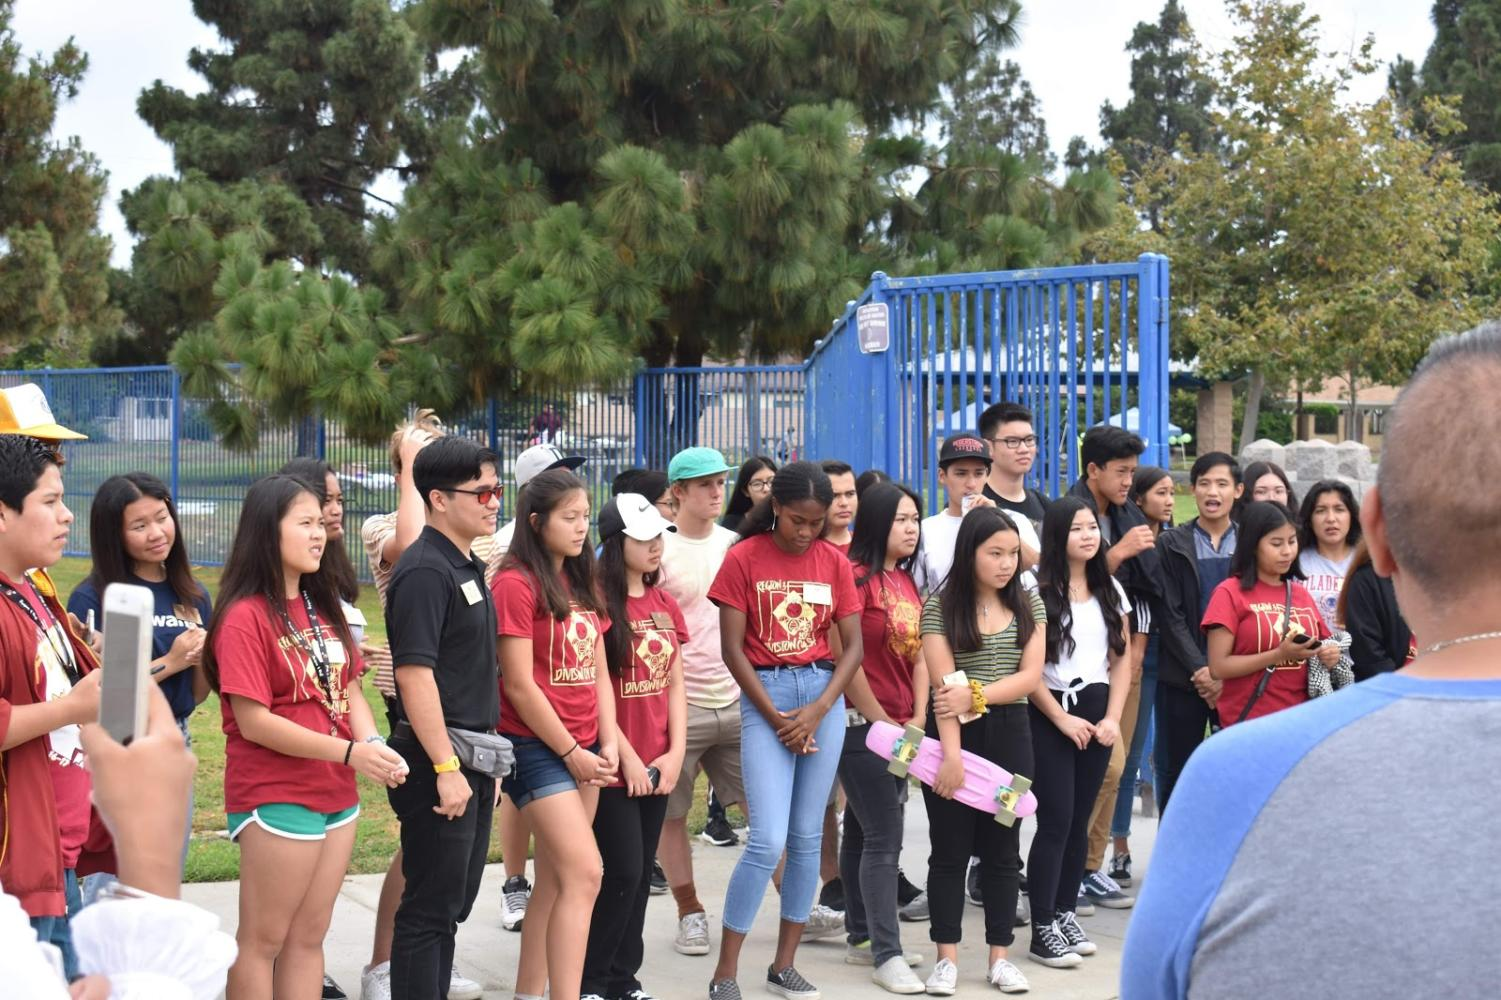 Division 04 West Key Club members meet up for their monthly division conference meeting (DCM) at Miles Square Park where they participate in leadership activities and earn community service hours.